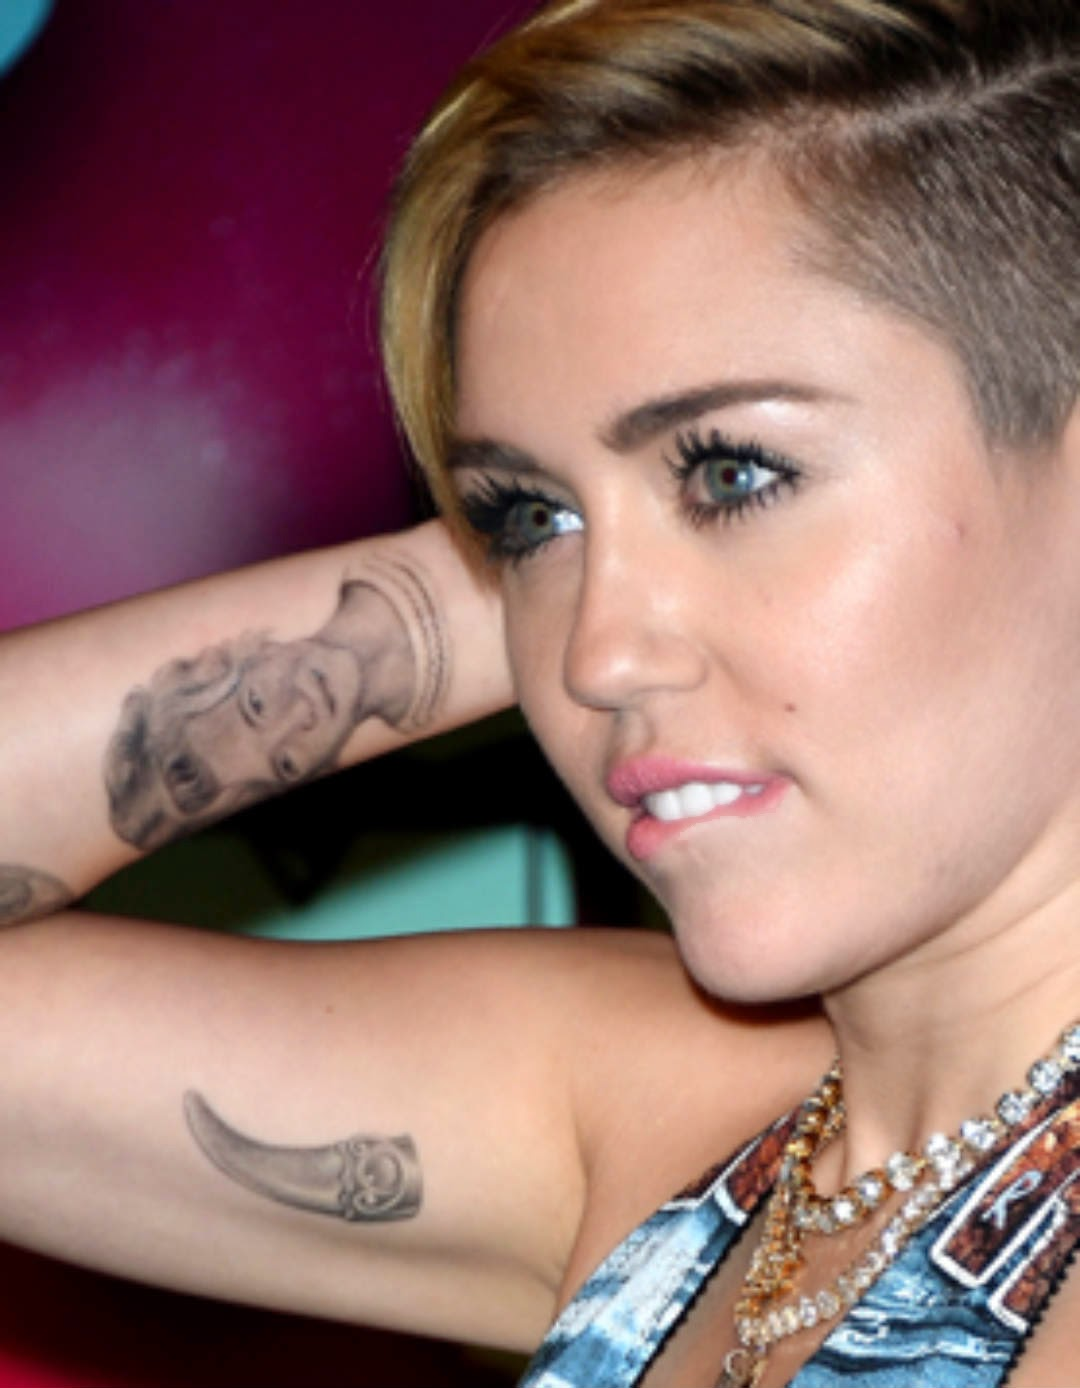 Miley Cyrus Tattoo Hd Images O Wallpaper Picture Photo Ideas And Designs